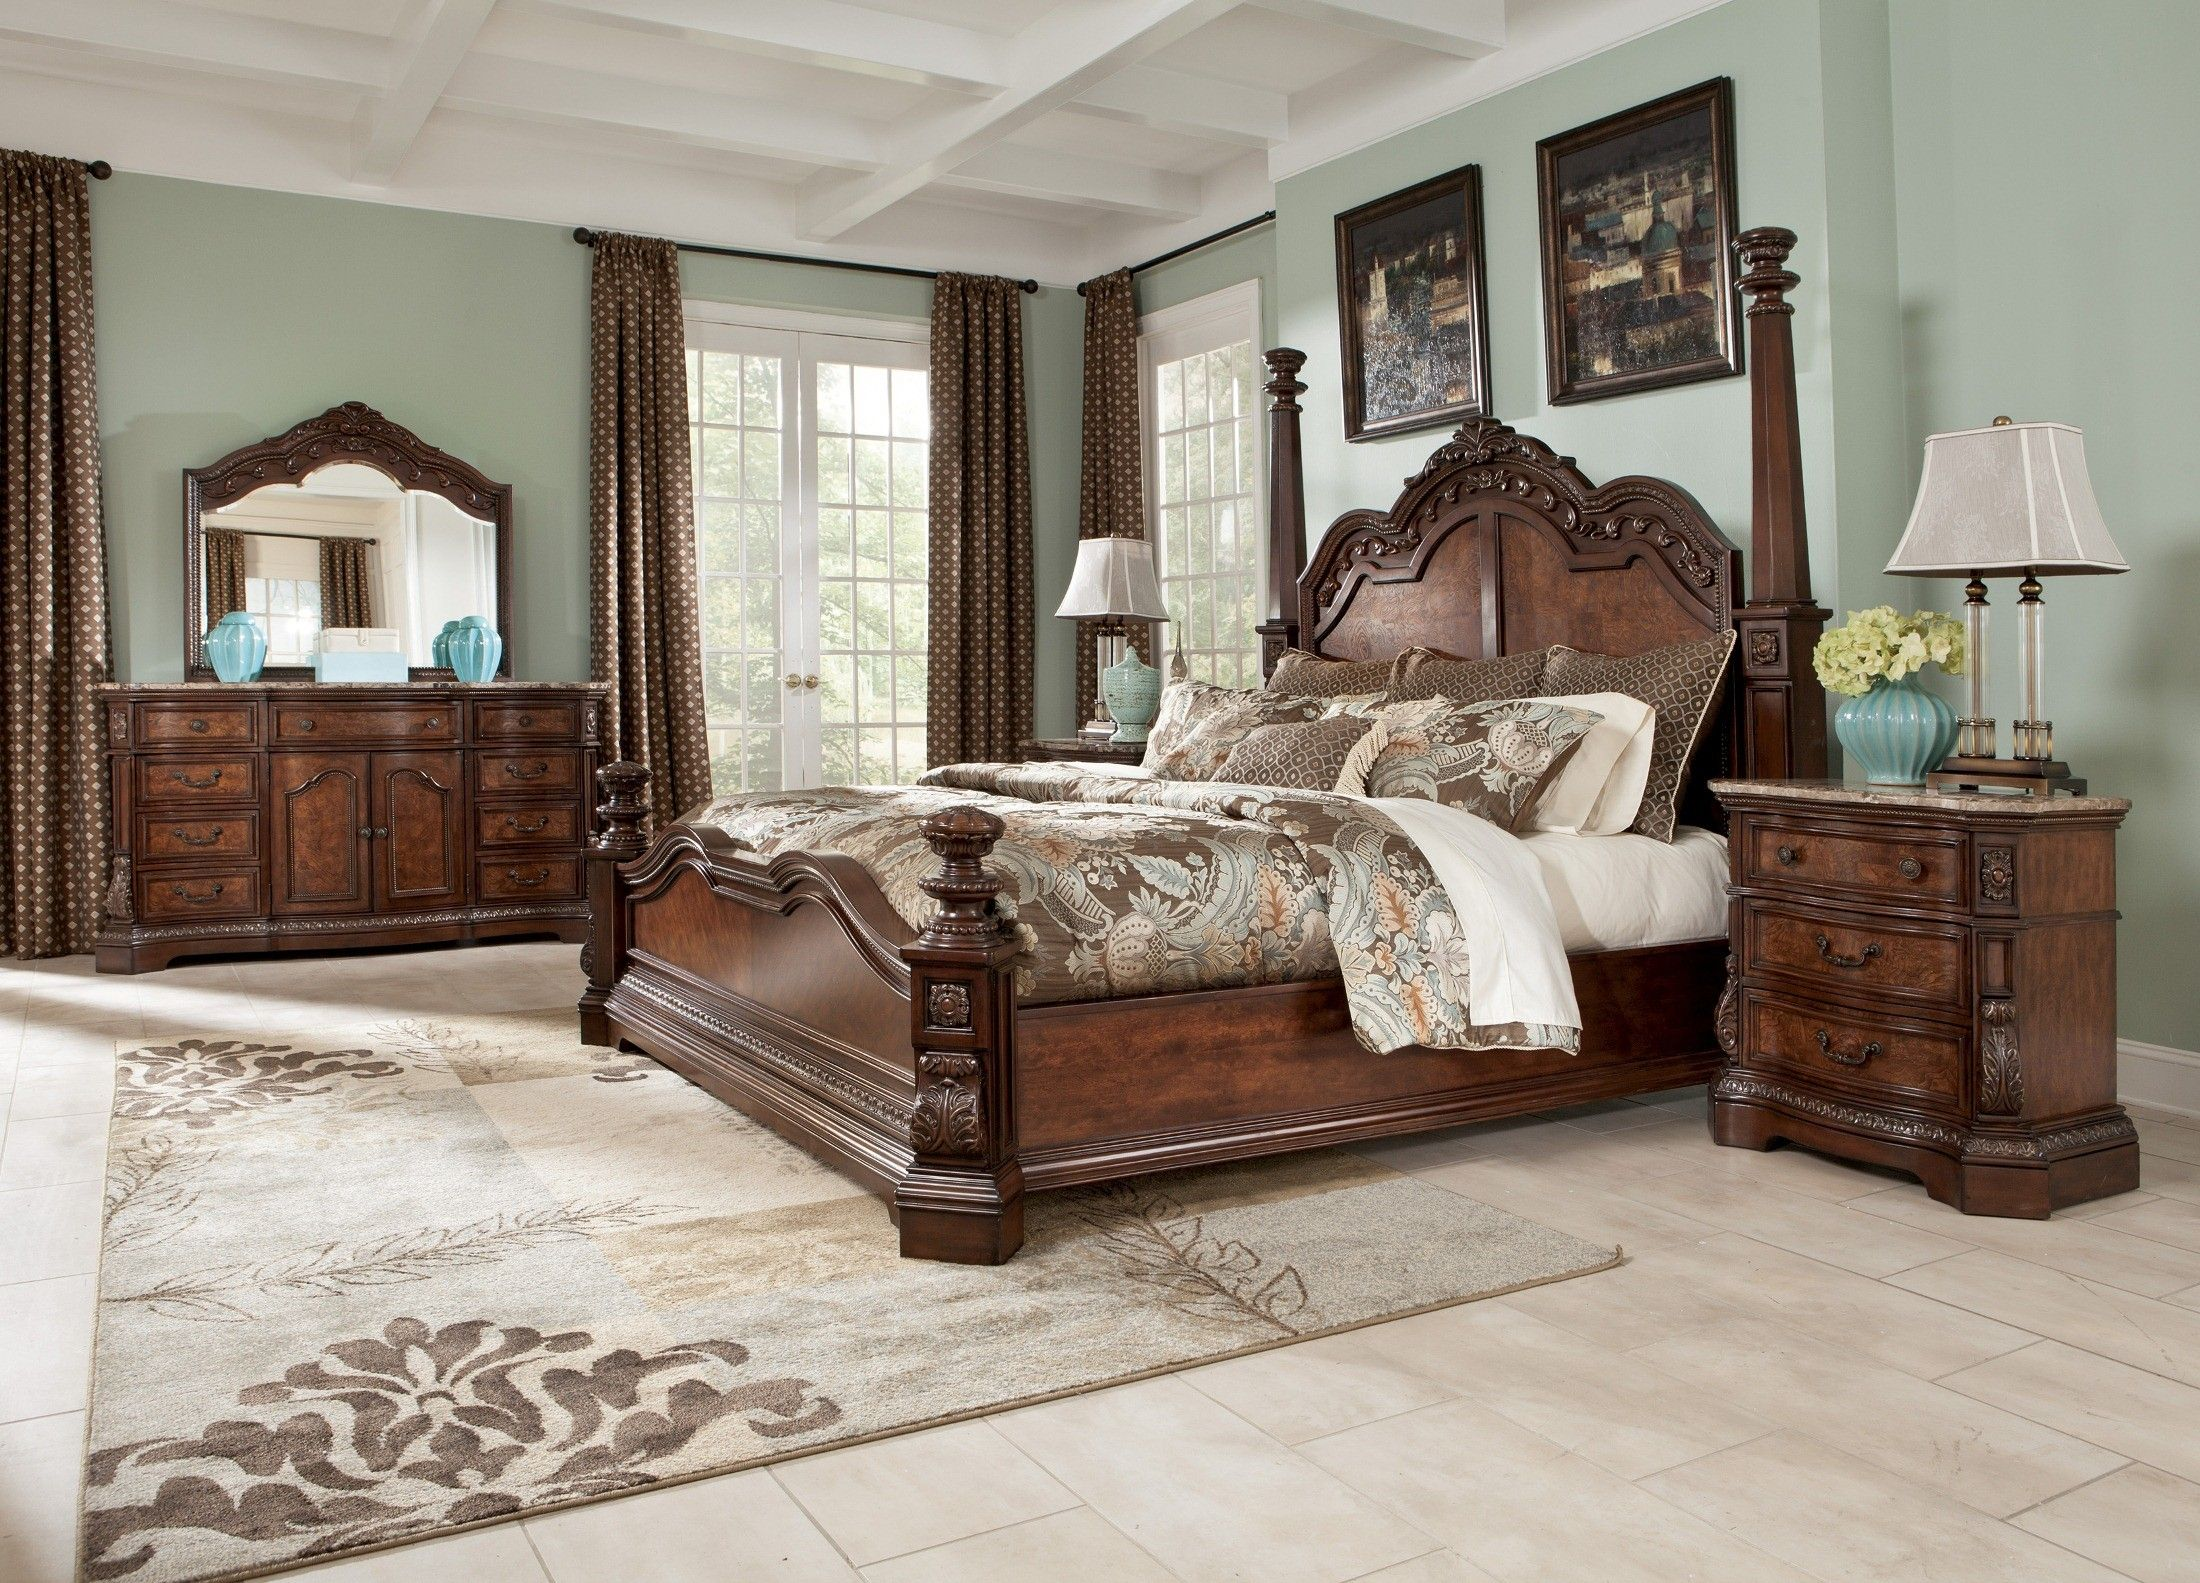 Ashley Furniture cherry wood 4 poster bed King bedroom